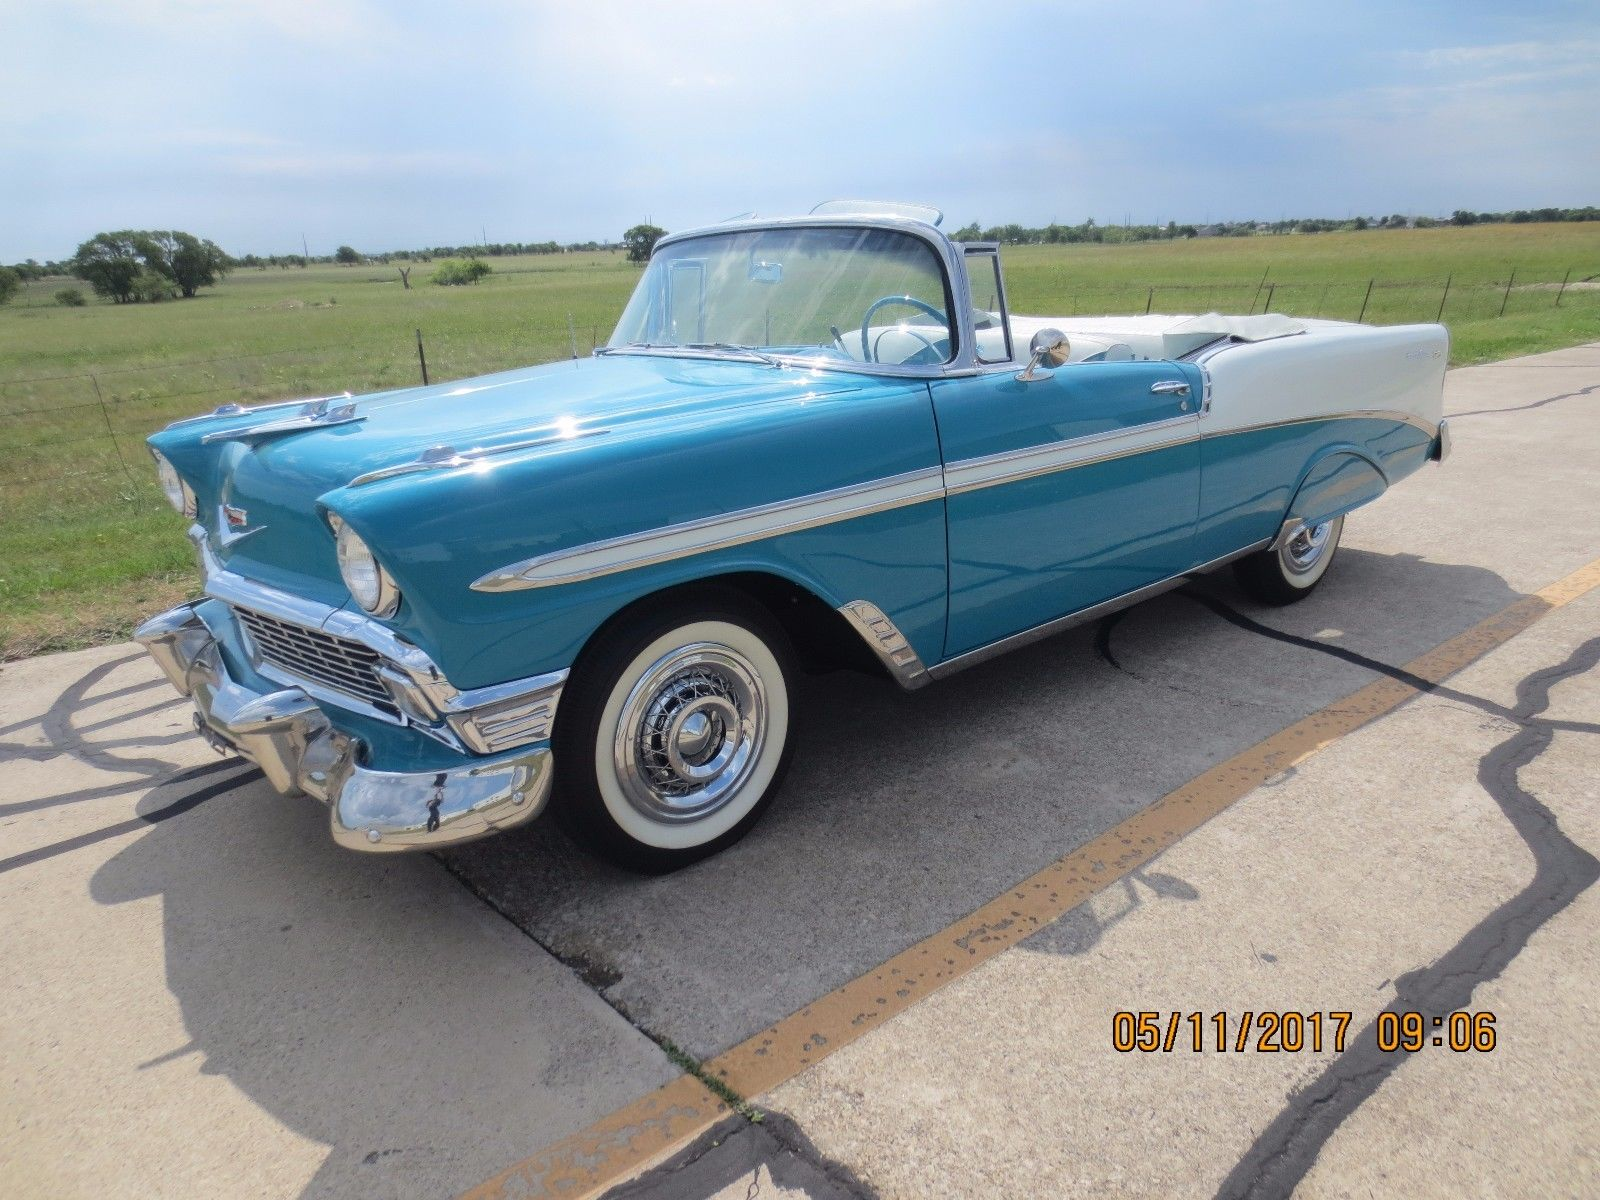 1956 chevrolet bel air convertible for sale - 1956 Chevrolet Bel Air Convertible For Sale 50